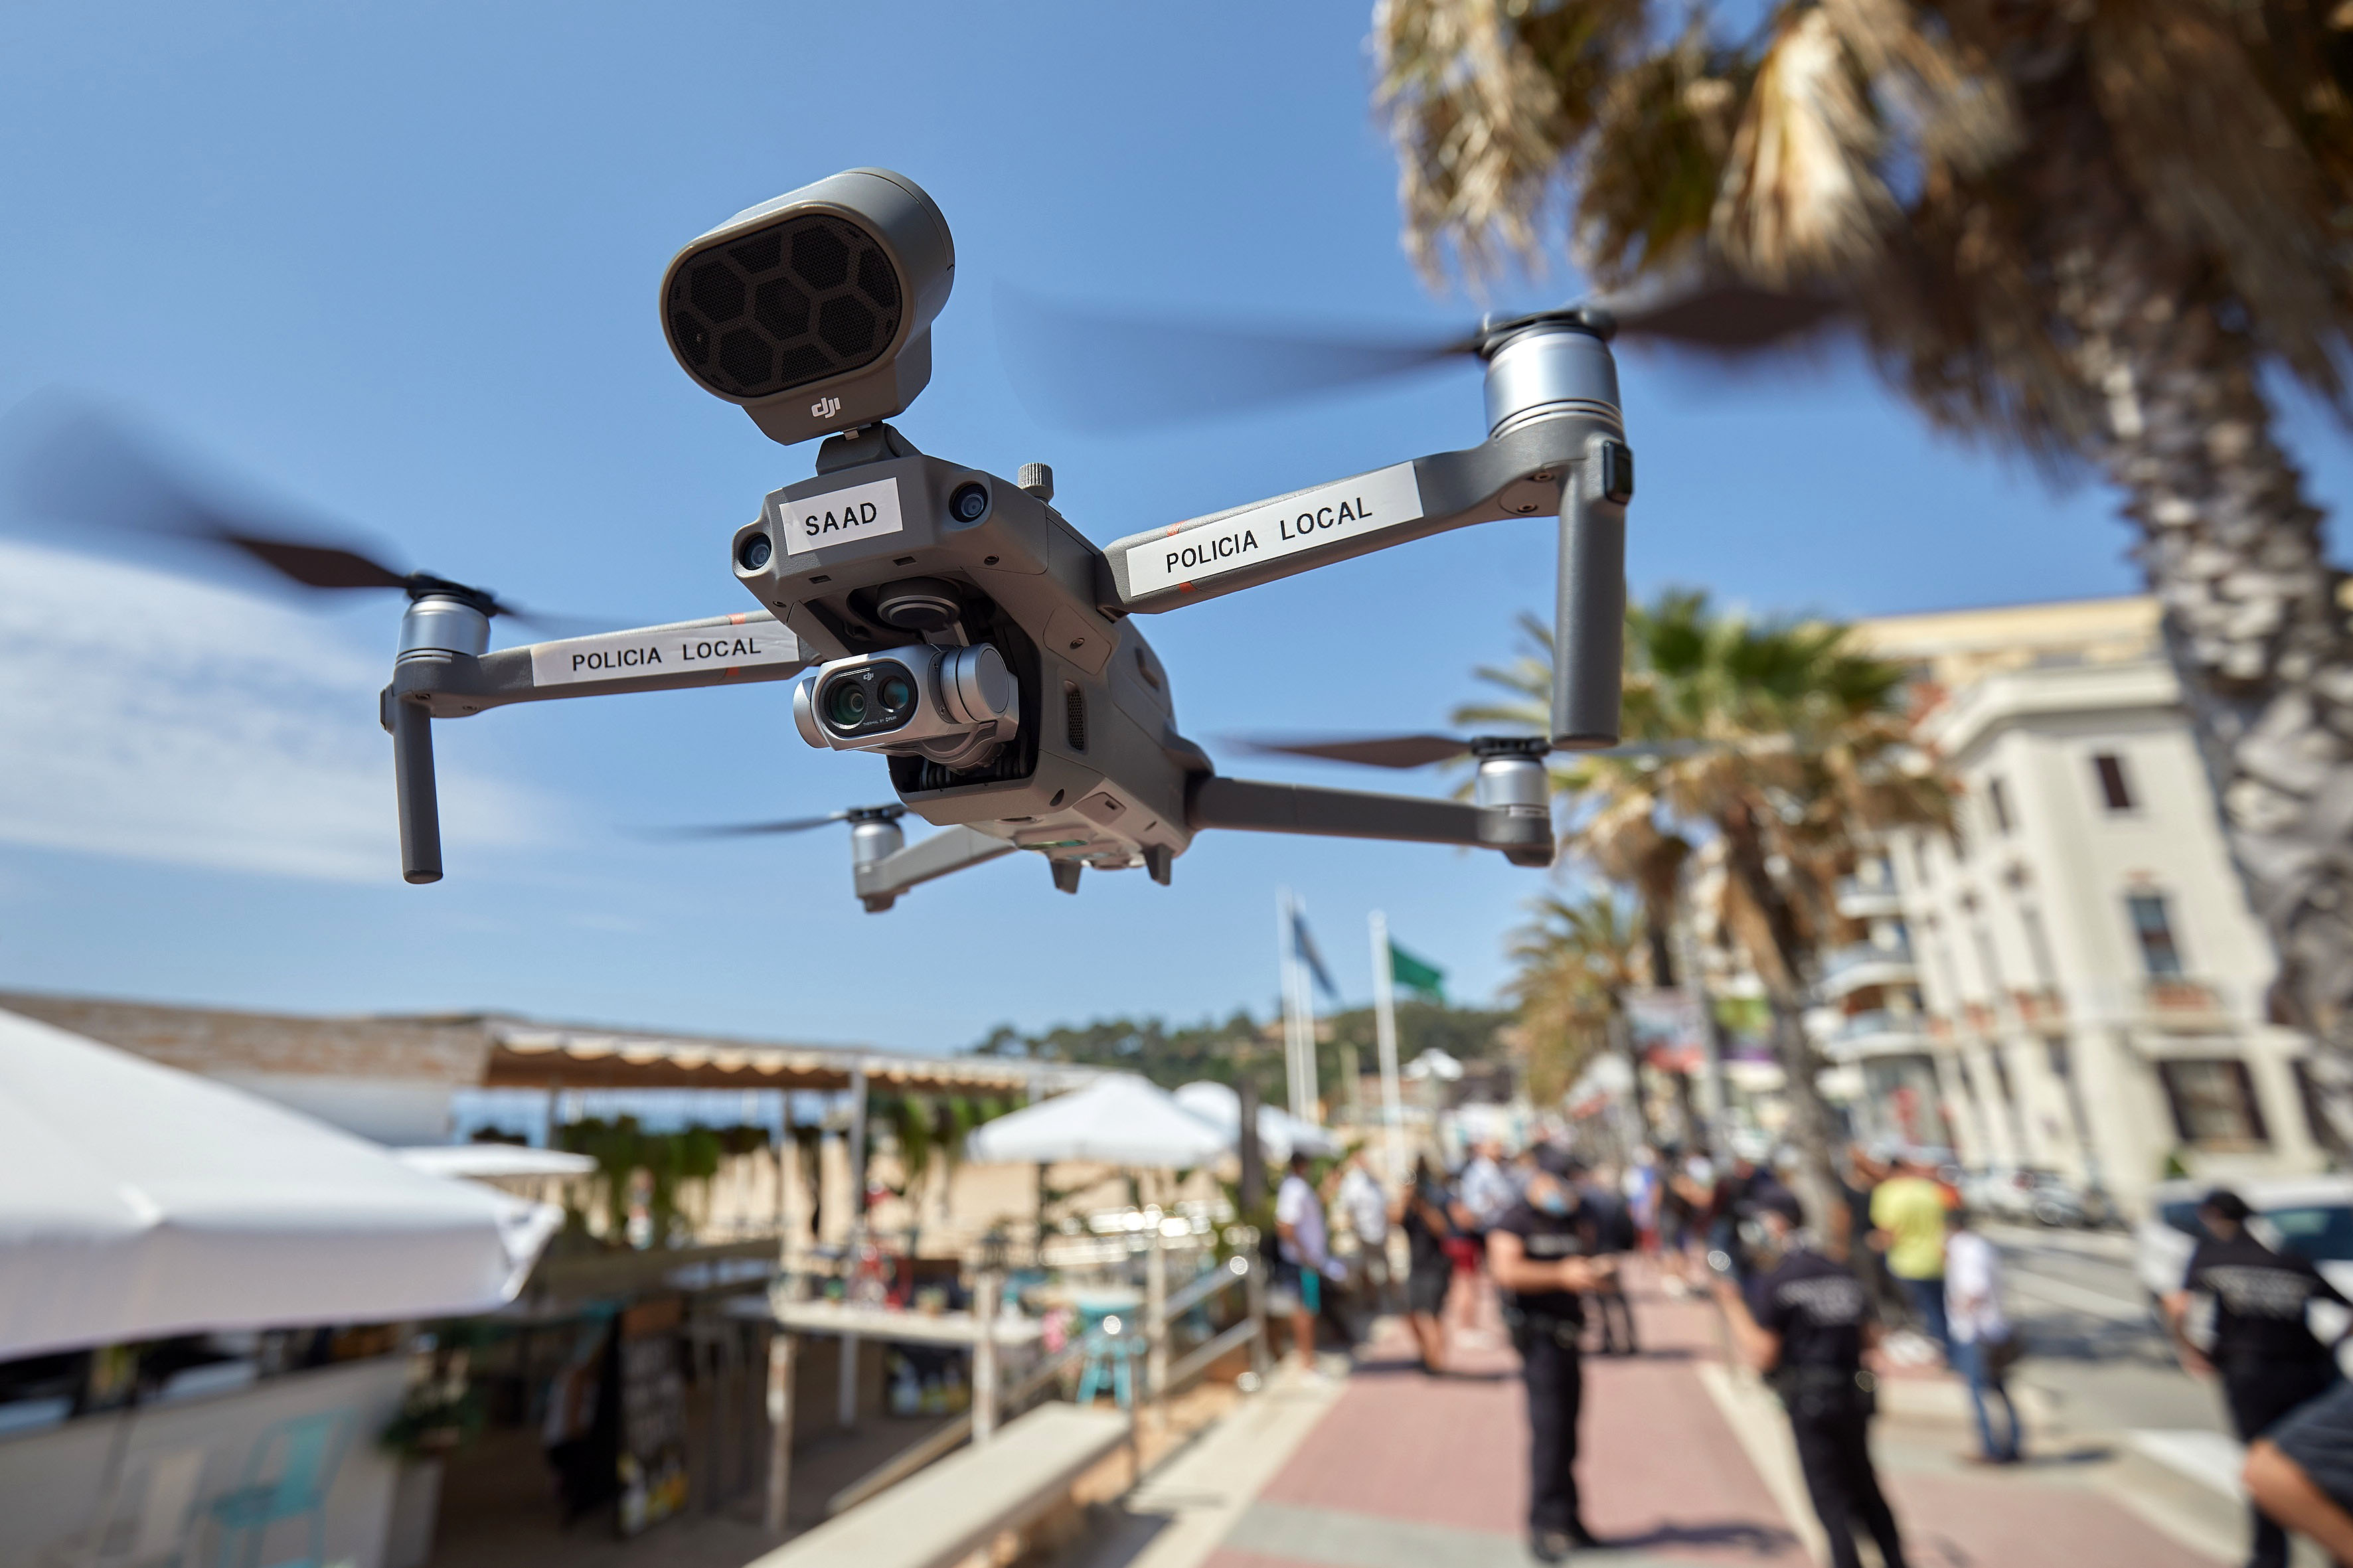 Police use a drone at a beach in Lloret de Mar, Spain, on June 22.